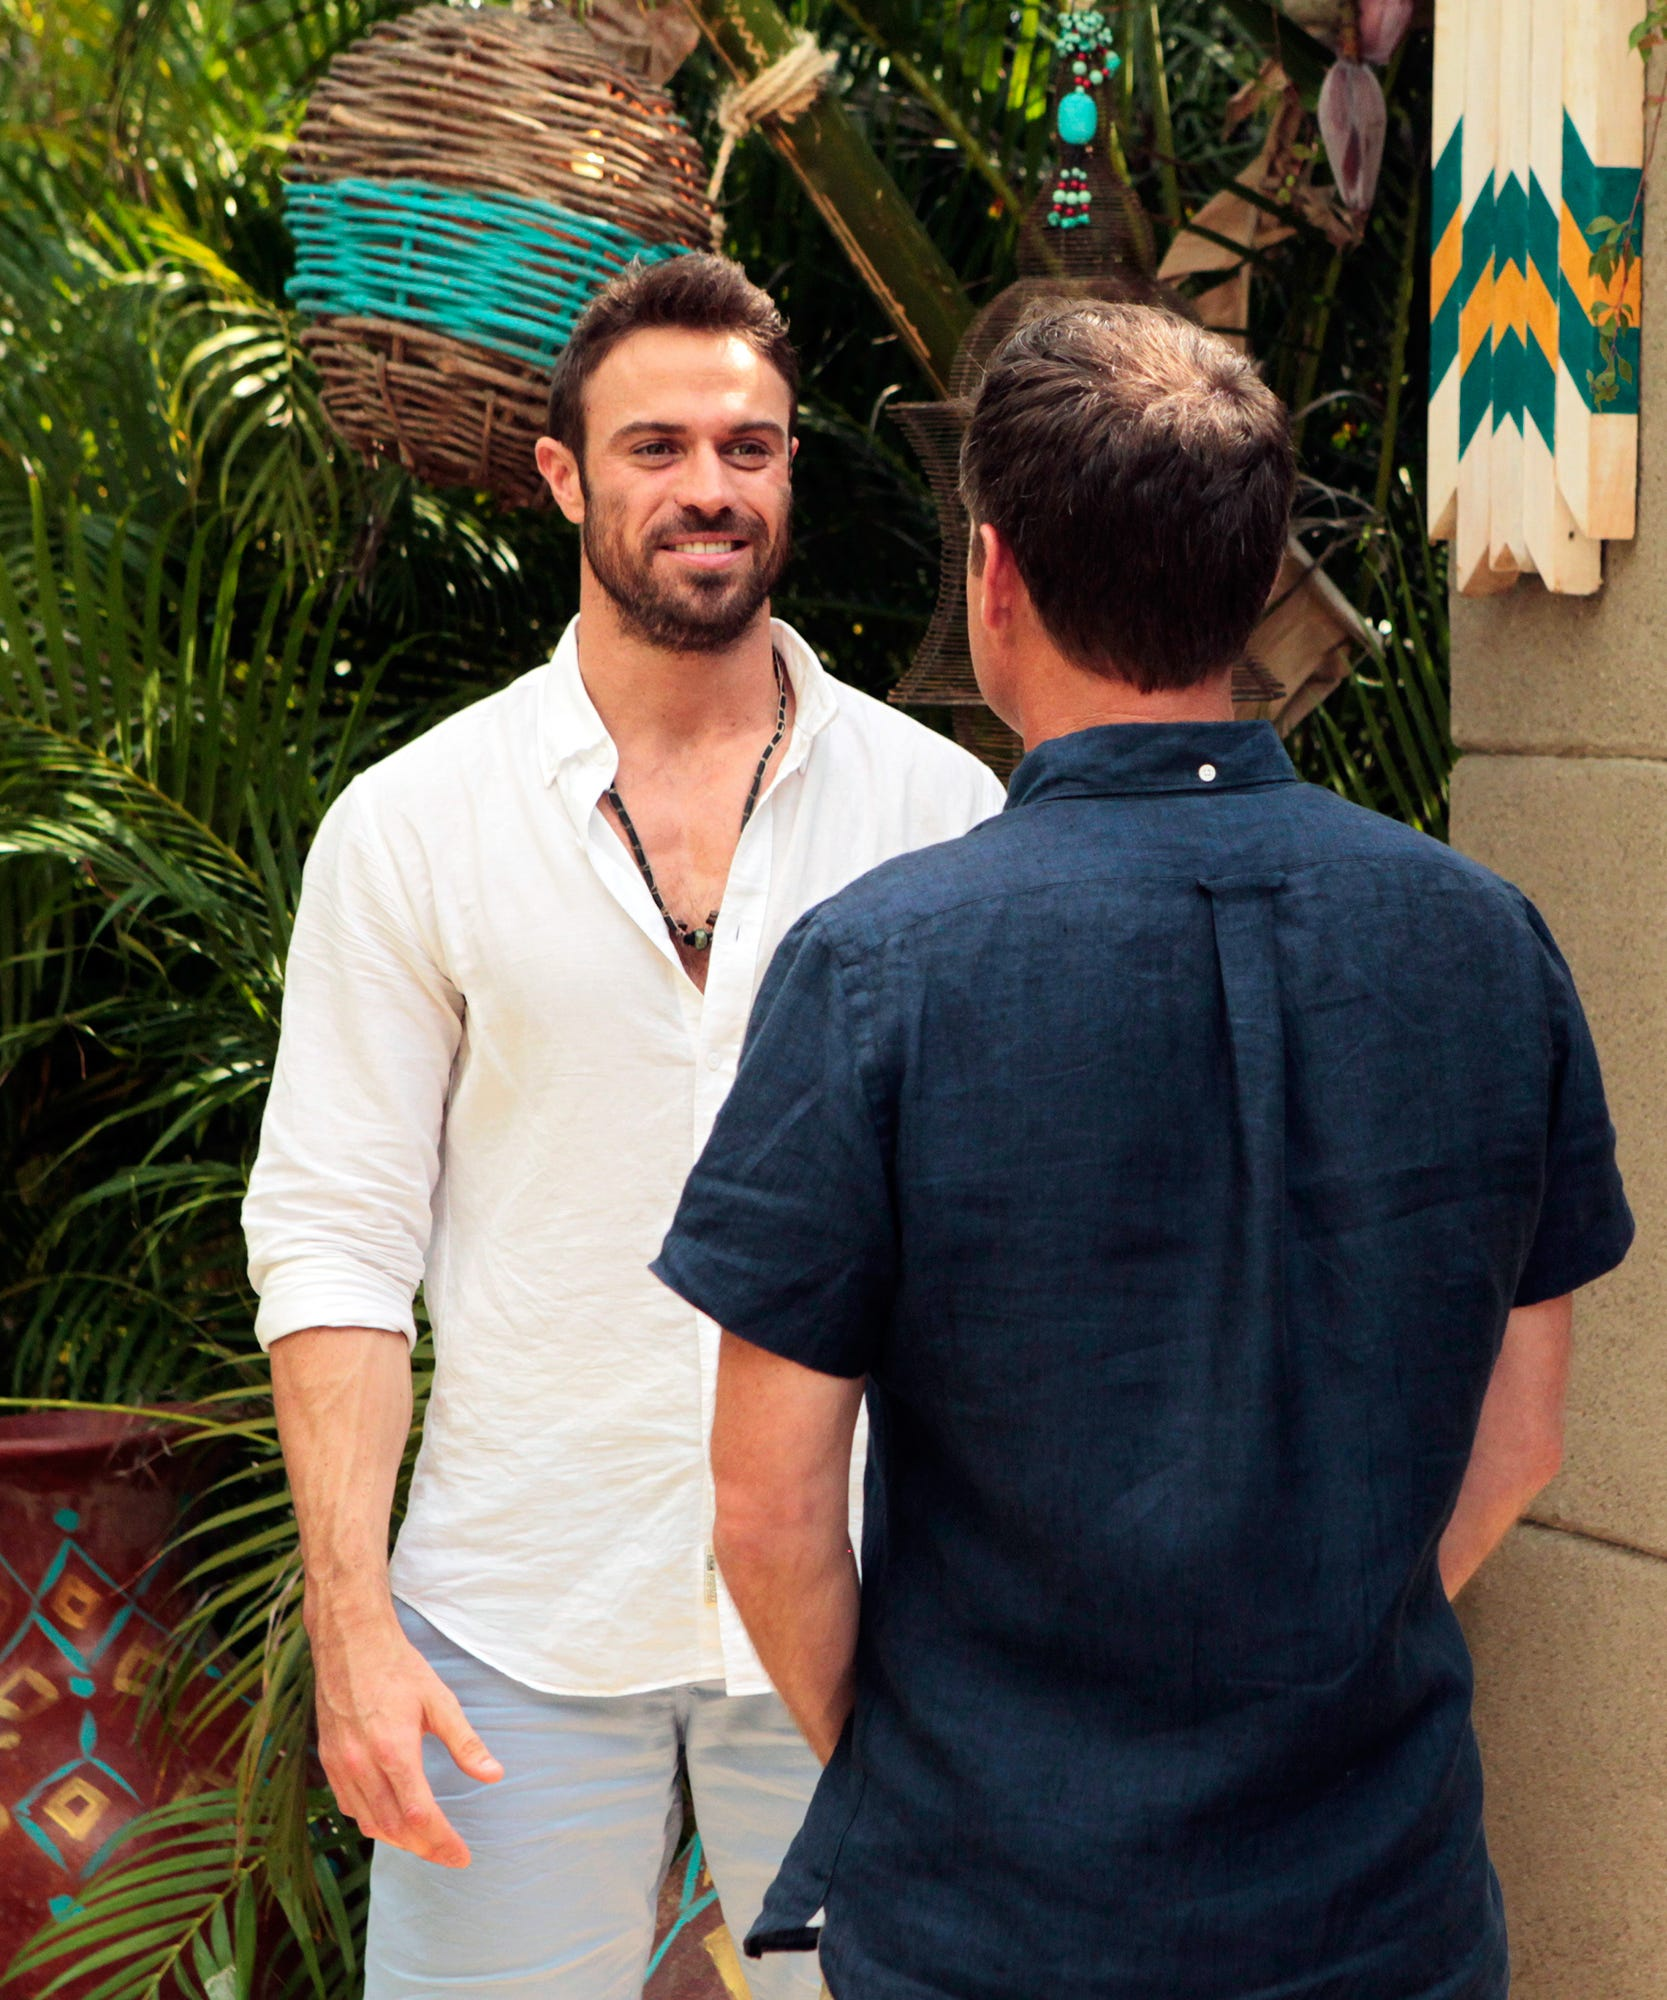 'The Bachelorette': Chase McNary Explains His Angry Reaction to Getting Eliminated